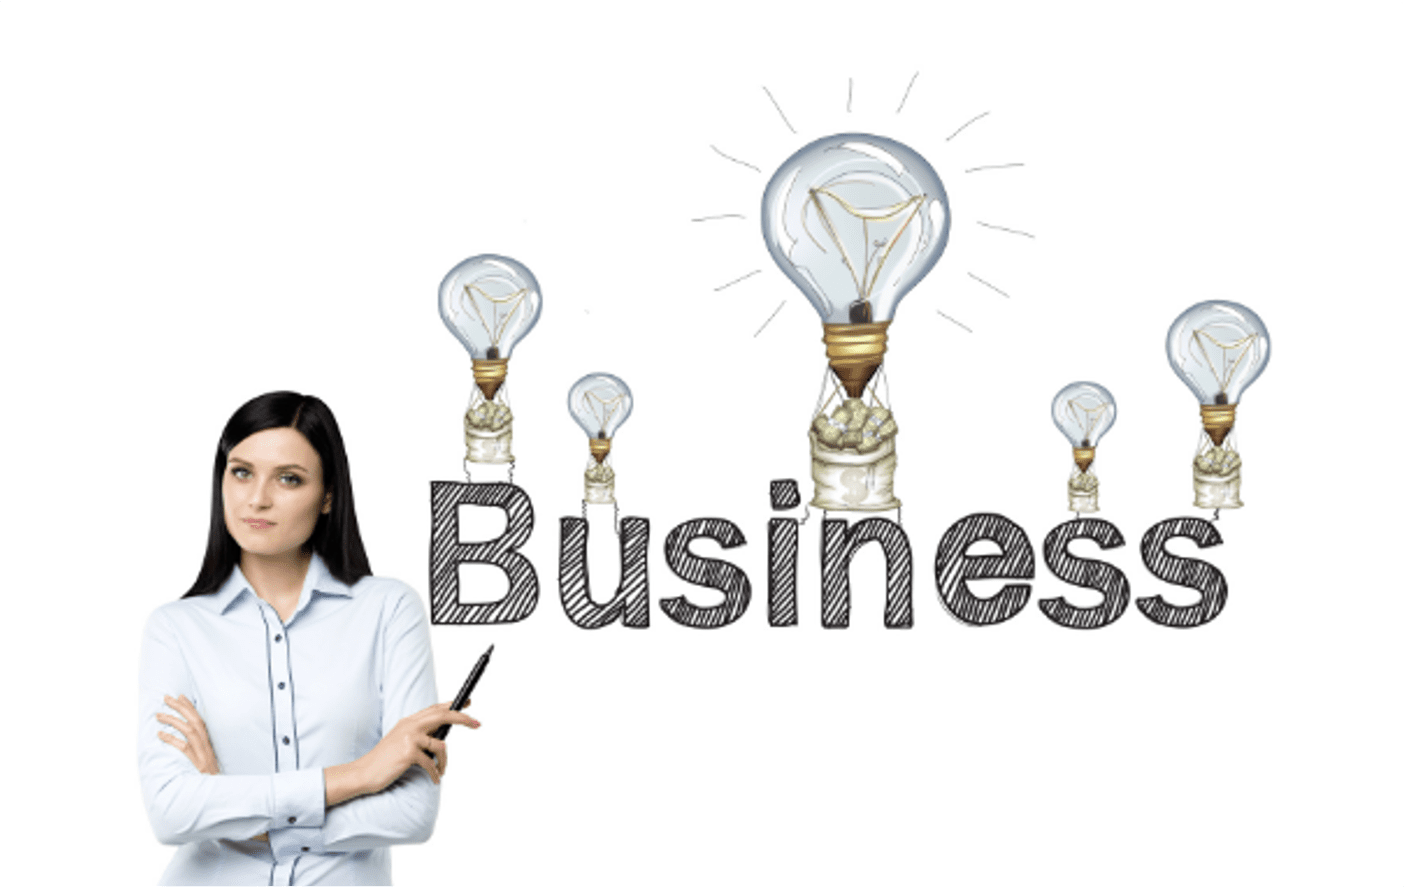 How to find the best business ideas for my business?